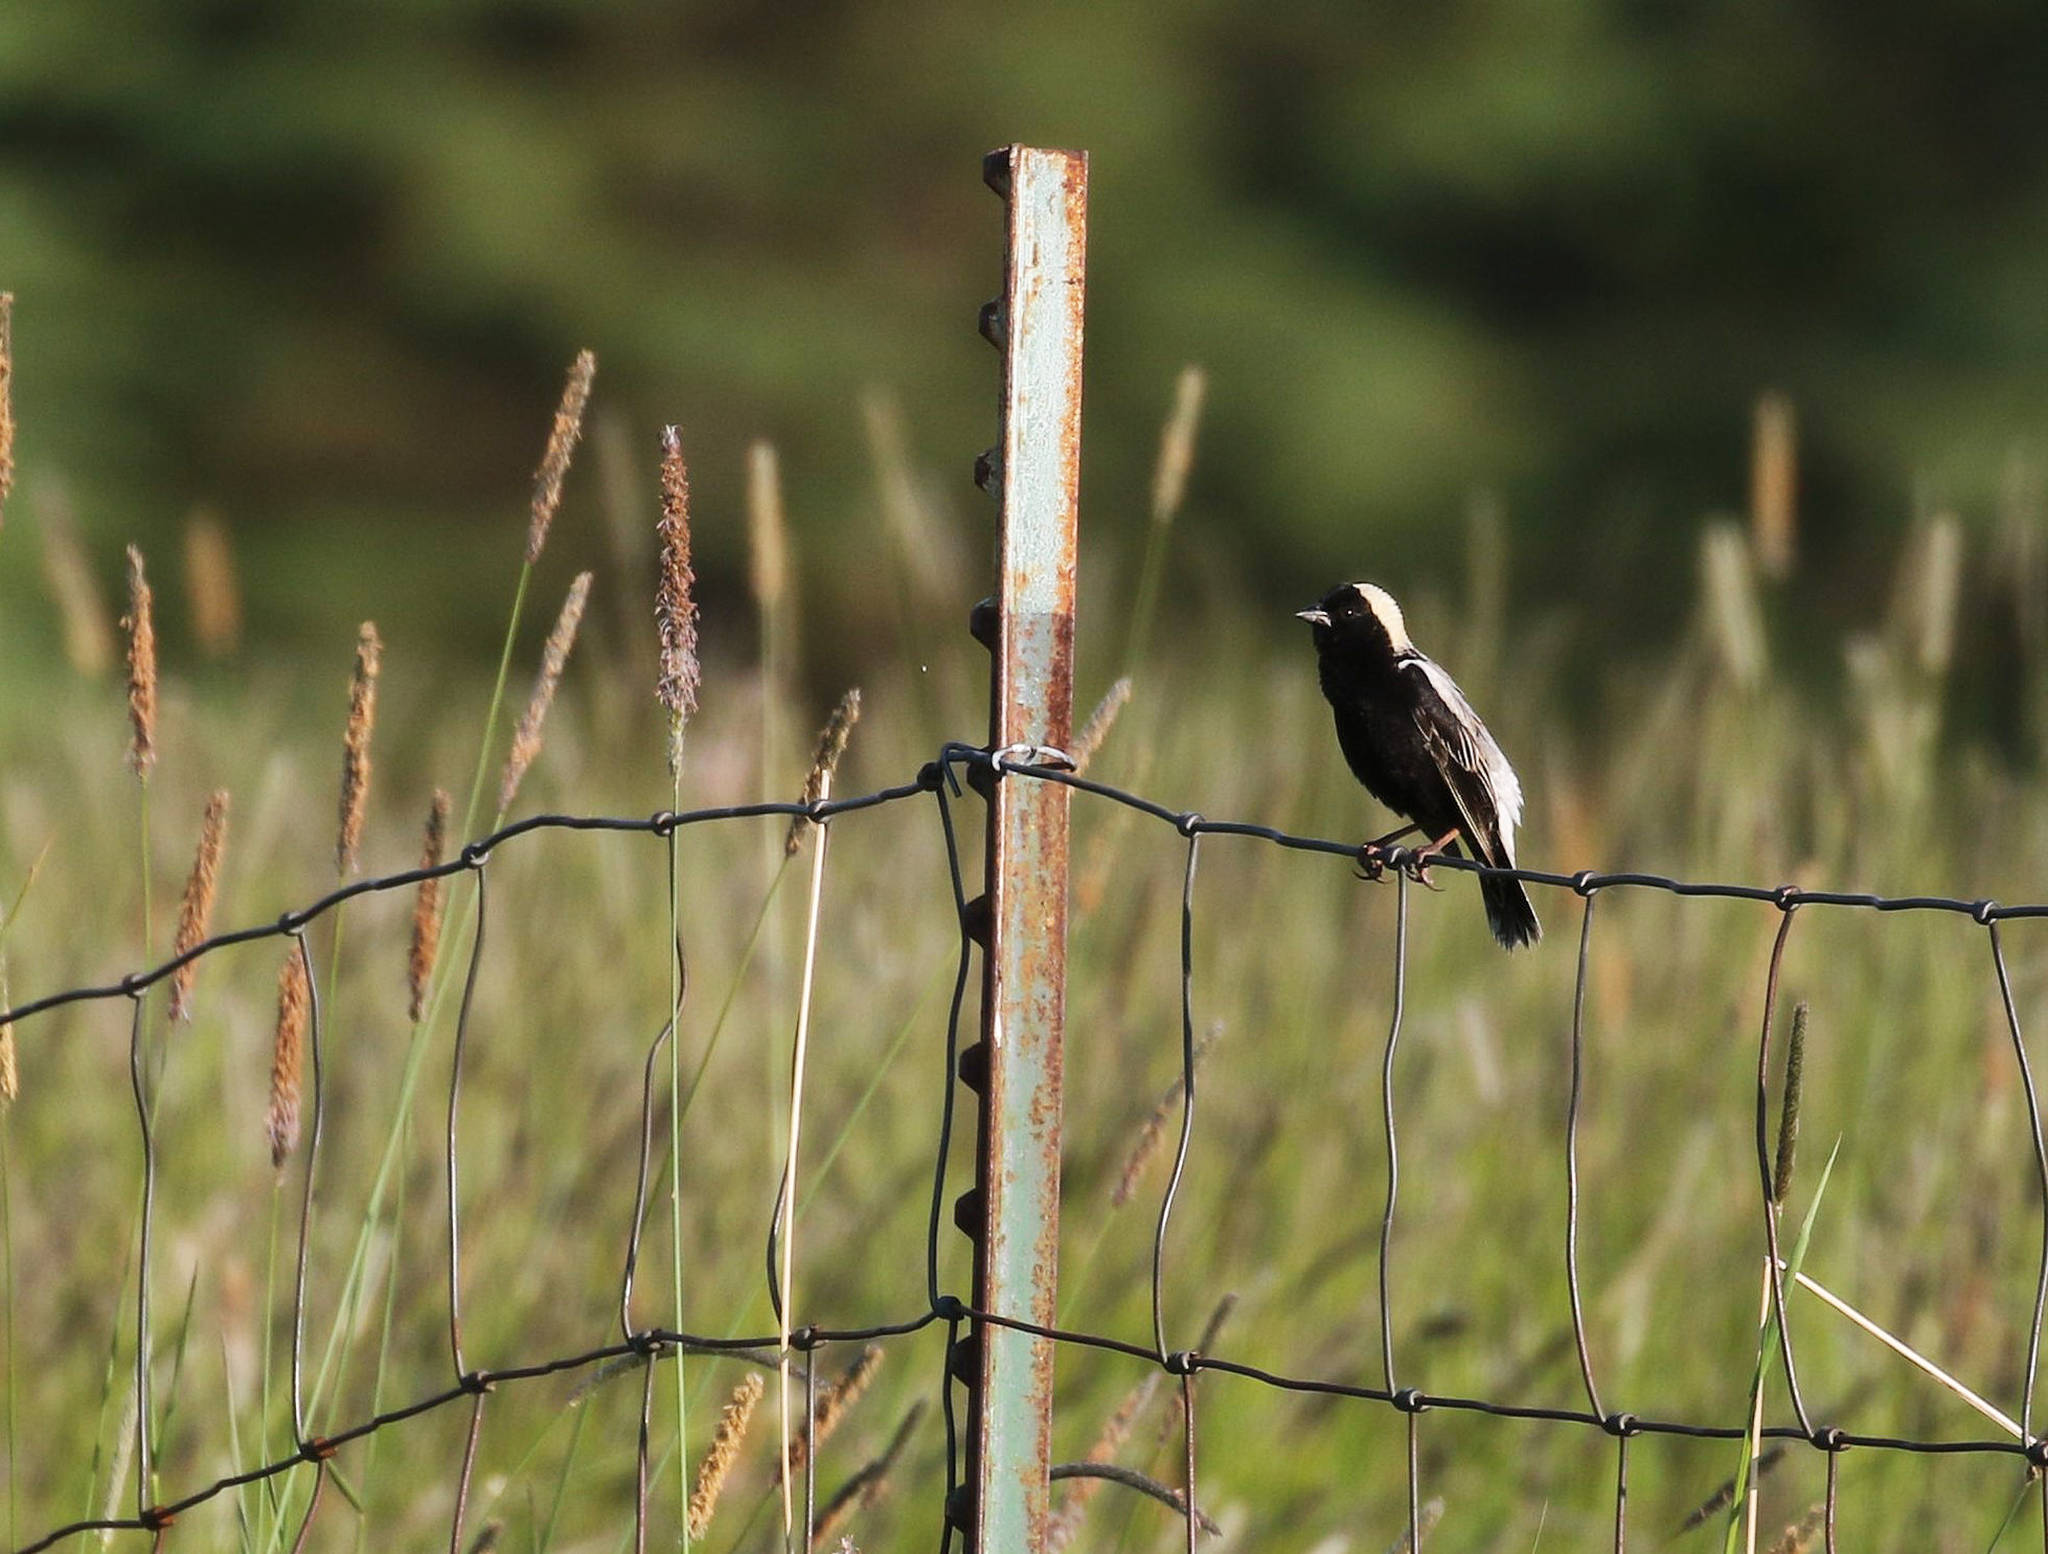 This adult male Bobolink was singing and displaying in a distant field near Homer, Alaska. With the aid of a 500mm lens, astute birders documented the first occurrence of this species on the Kenai Peninsula. (Photo by Sarah Dzielski)